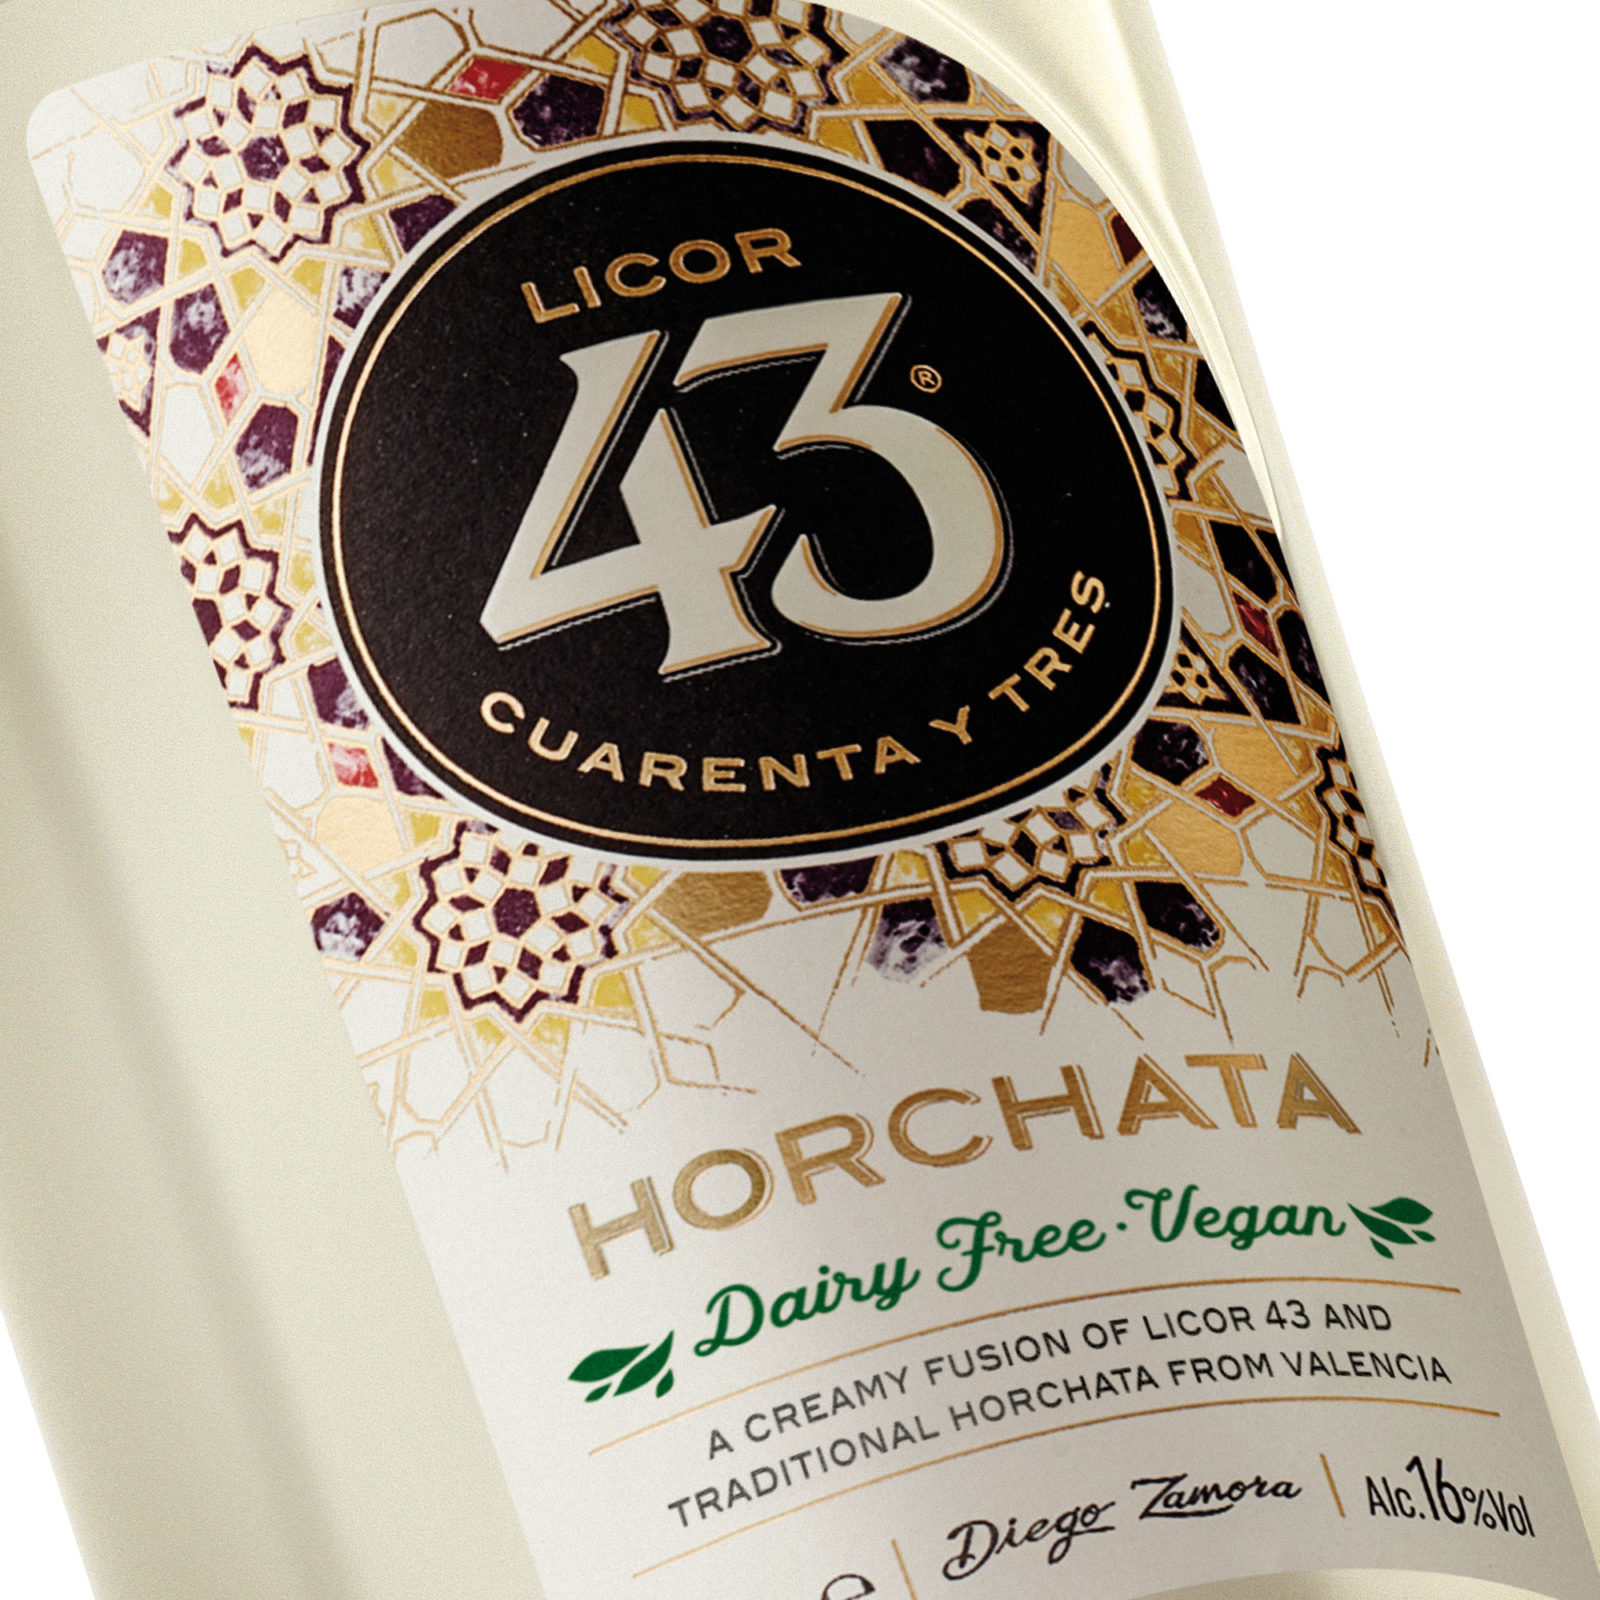 INTRODUCING LICOR 43 Horchata